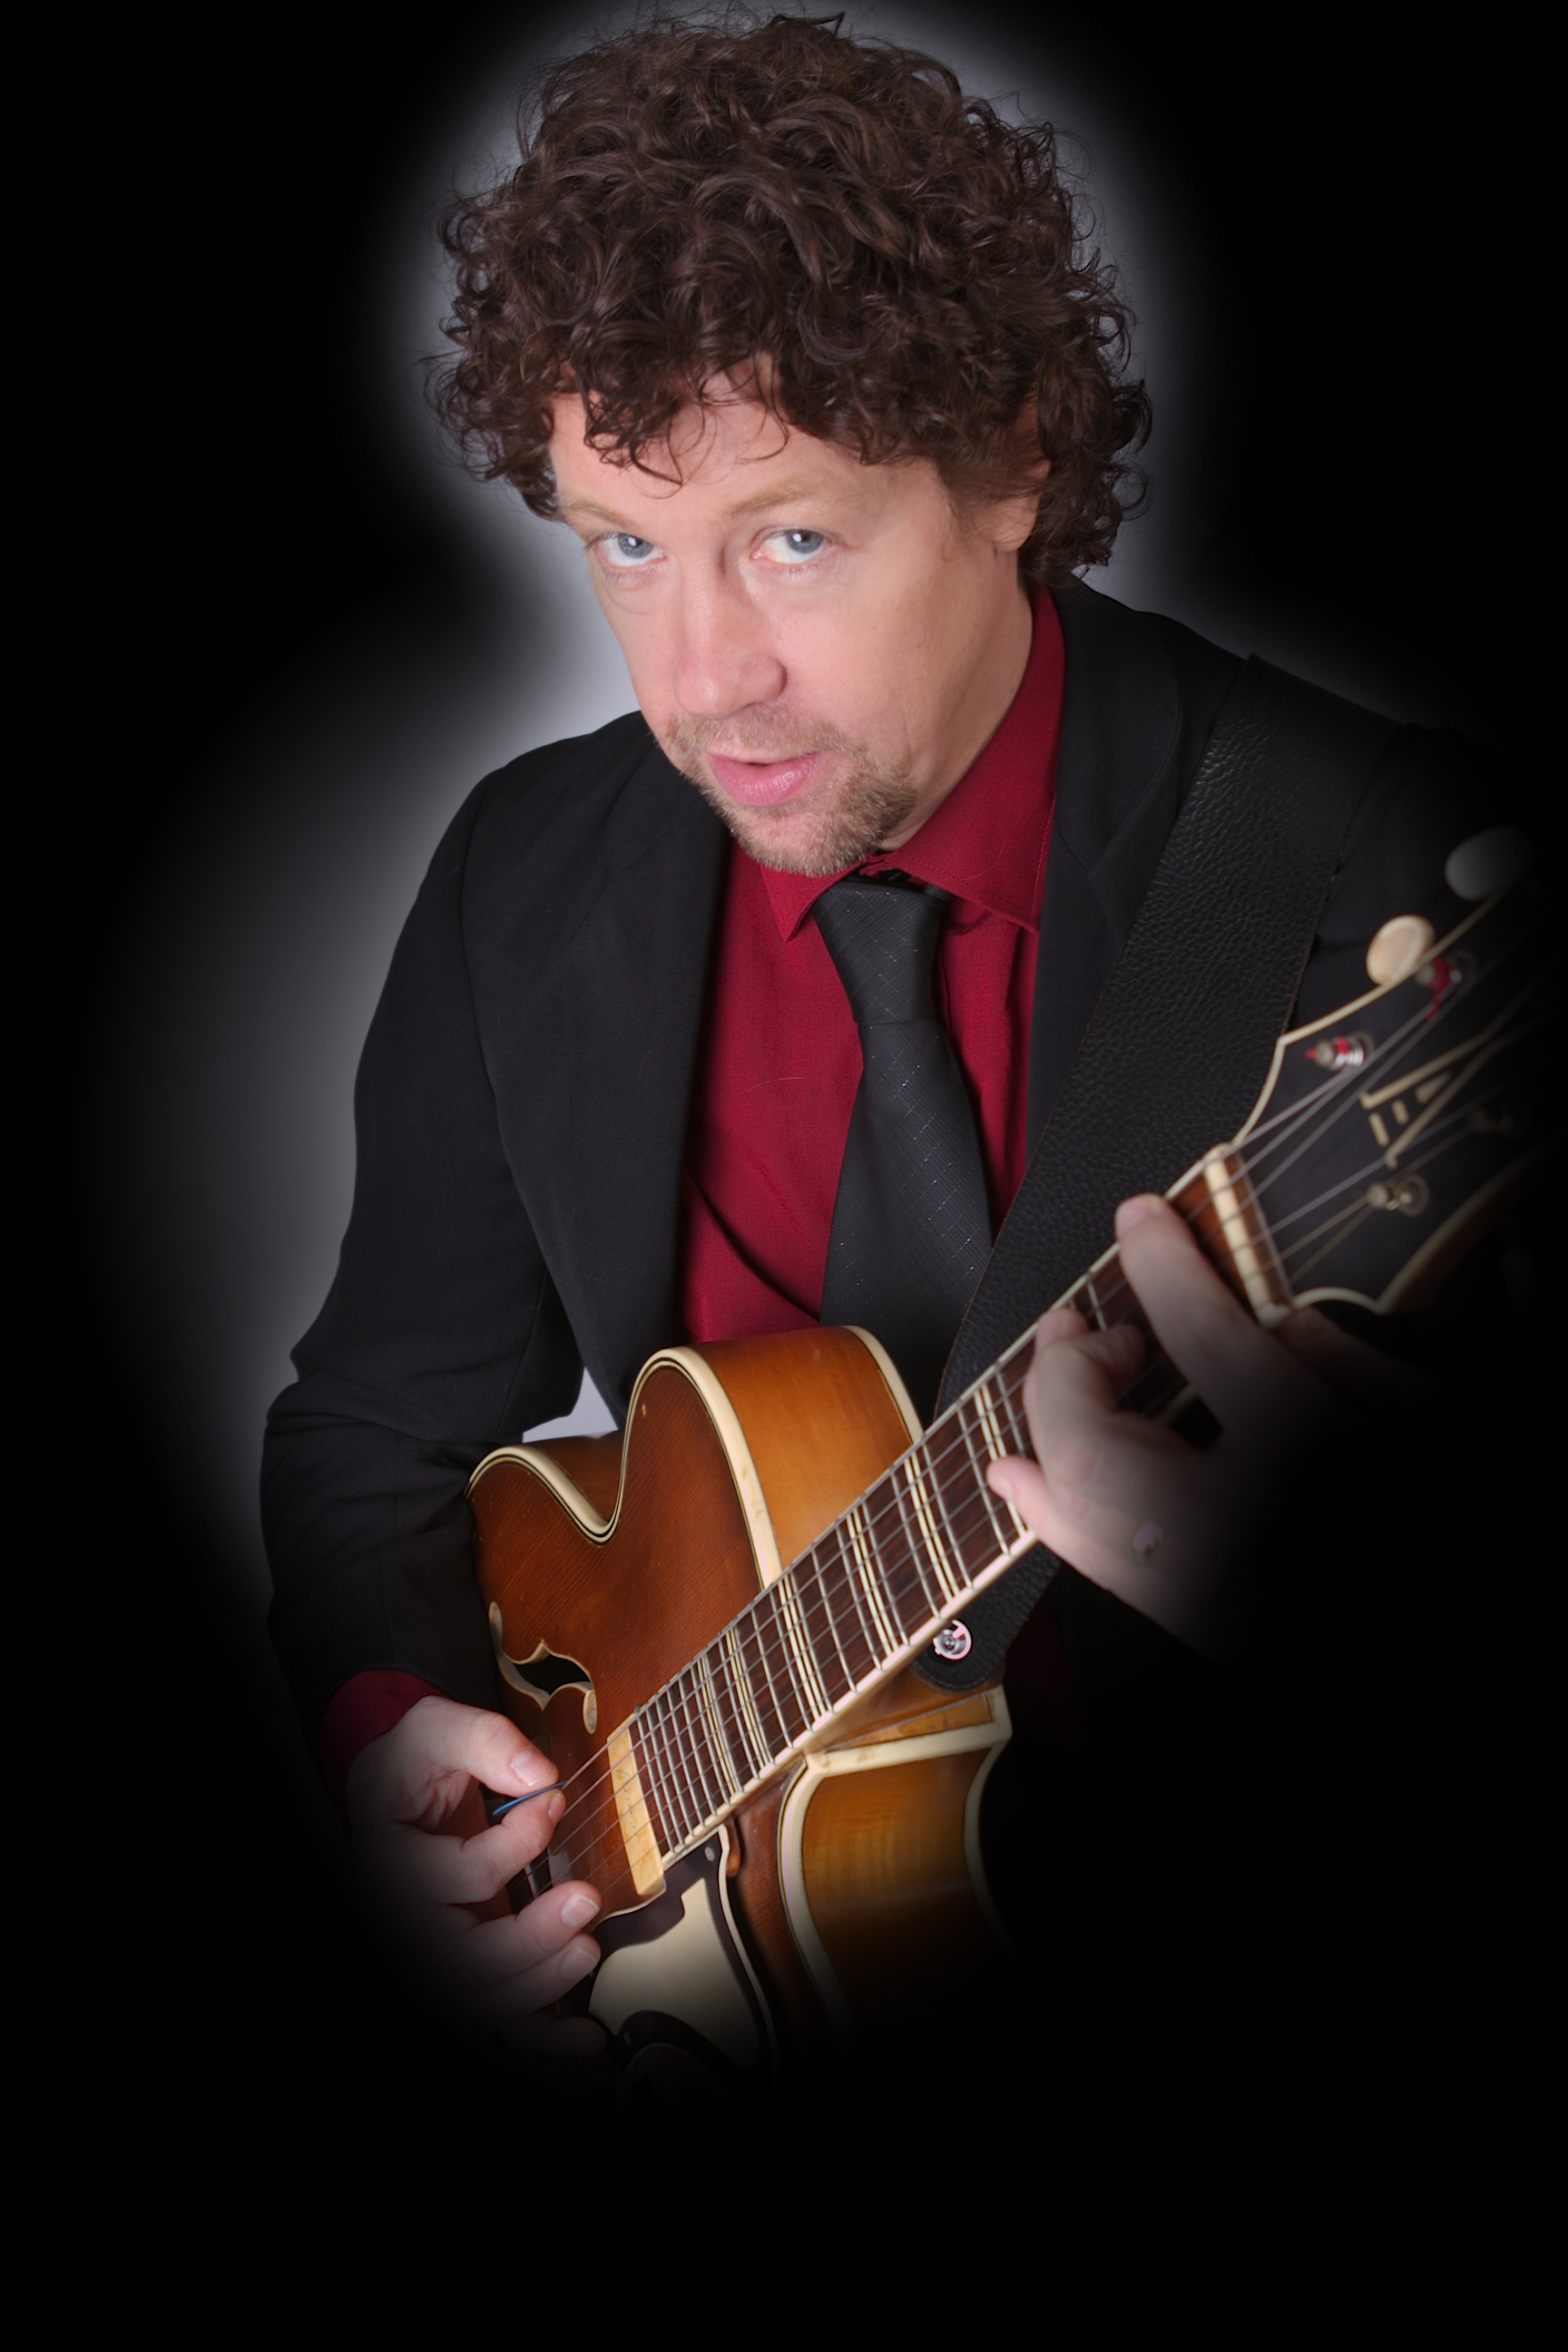 Ben Blue, gitarist zanger bij Madame Jeanette & the Peppers Jazz, lounge en easy listening. band boeken? Madame Jeanette & the Peppers spelen covers van Ella Fitzgerald, Billie Holyday, Crosby Stiils Nash & Young, Frank Sinatra, The Eagles e.v.a.